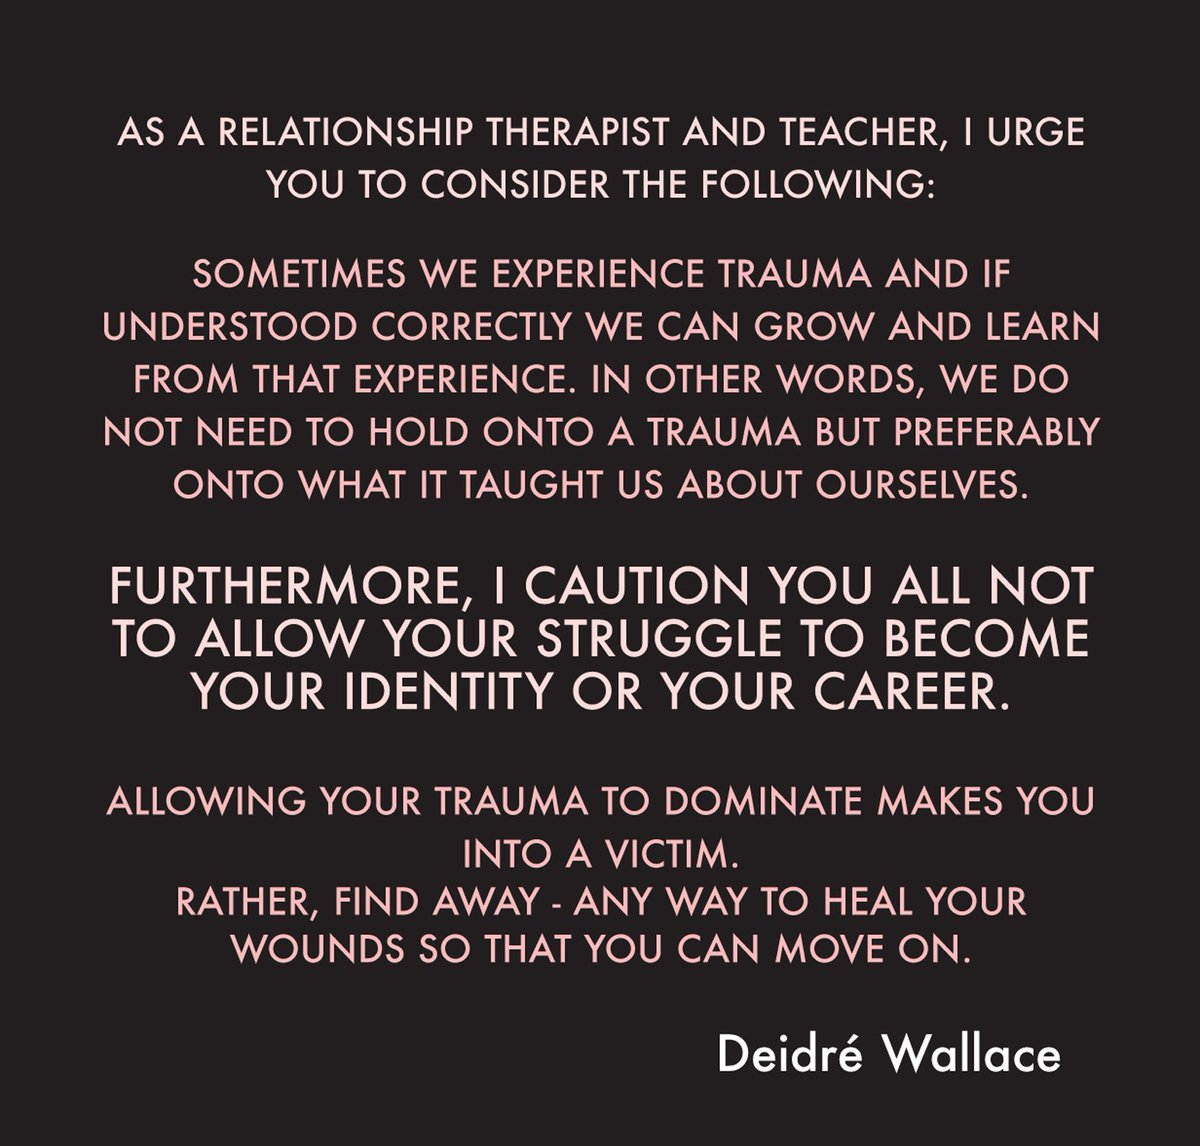 It's not good if you make you struggle your #identity. You may become...